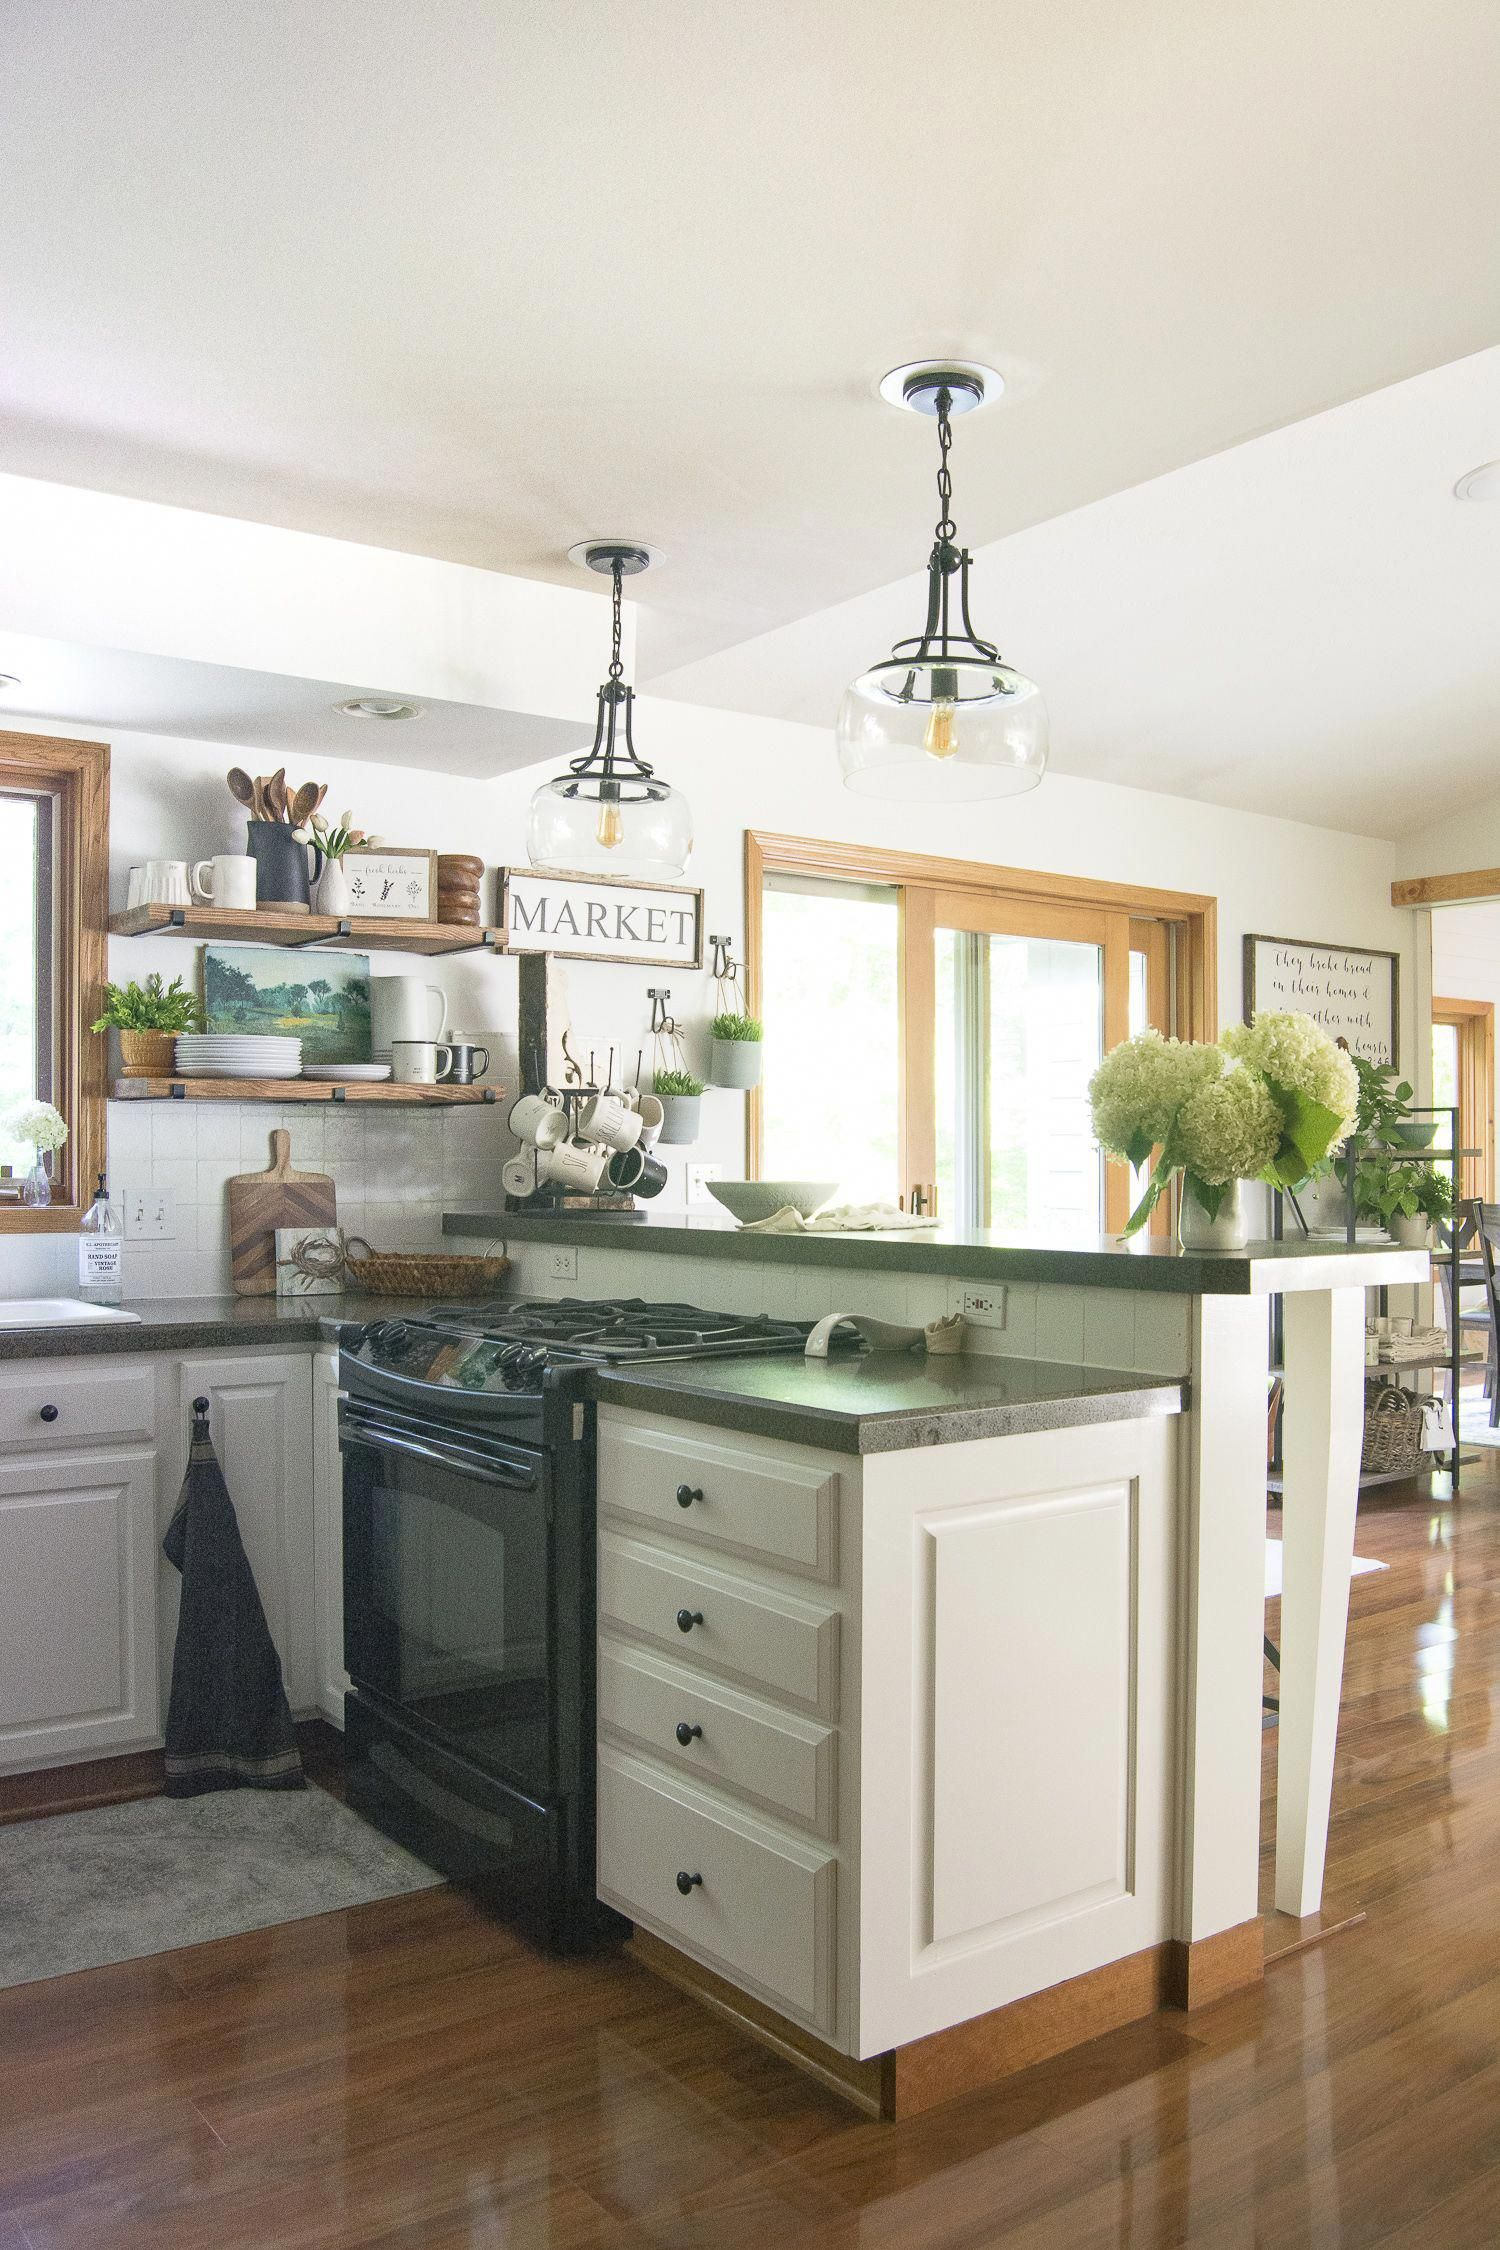 Design Your Own Kitchen: Read This Simple Step By Step DIY Open Shelving Tutorial